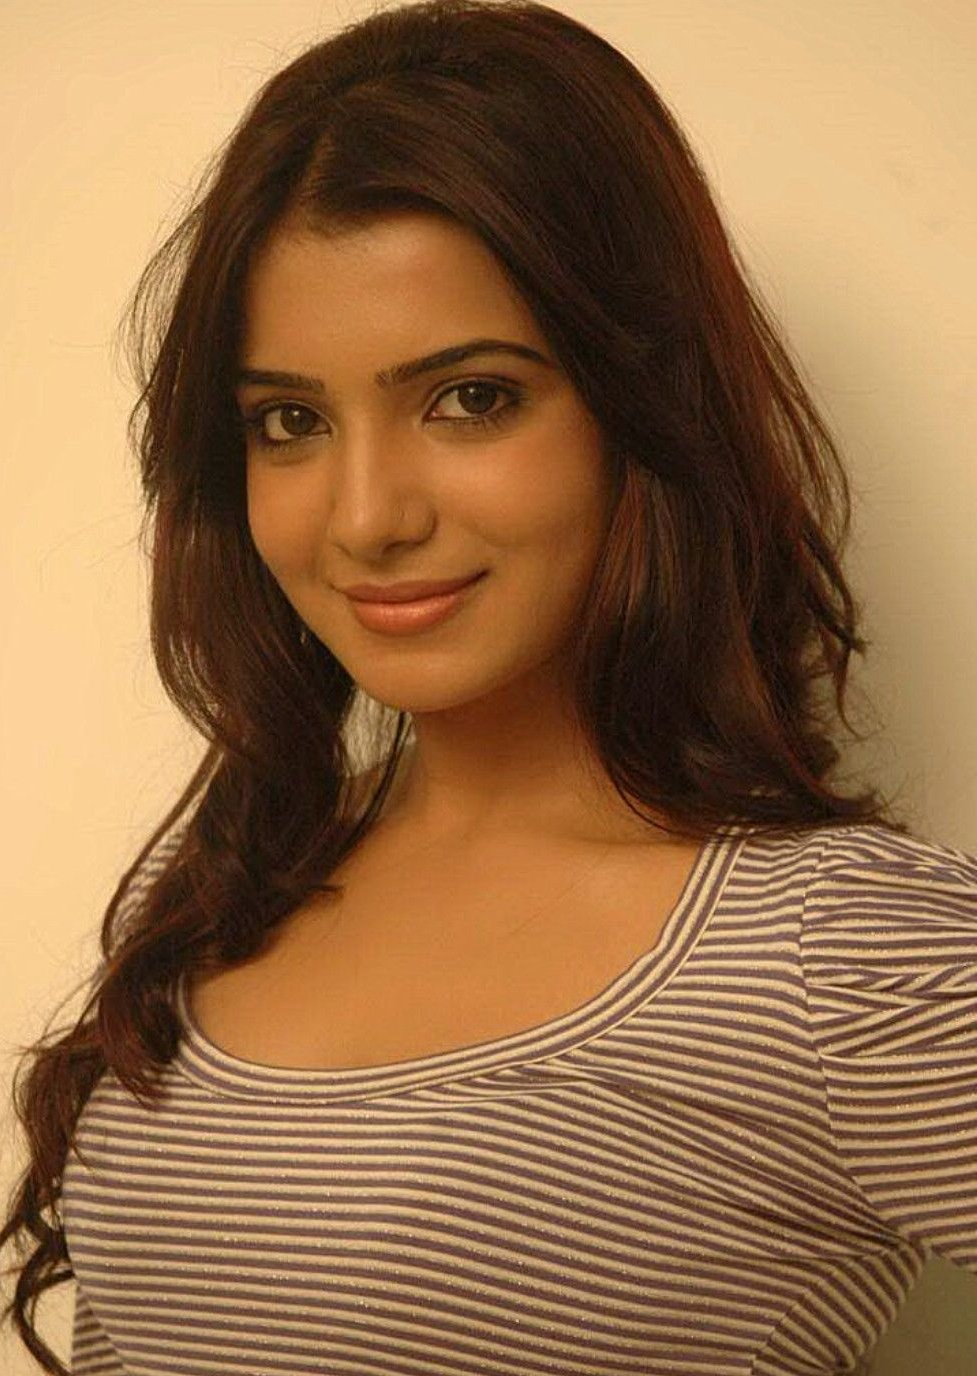 Porn Star Actress Hot Photos for You: South Indian Actress Samantha Cool Celebrity Photo Gallery